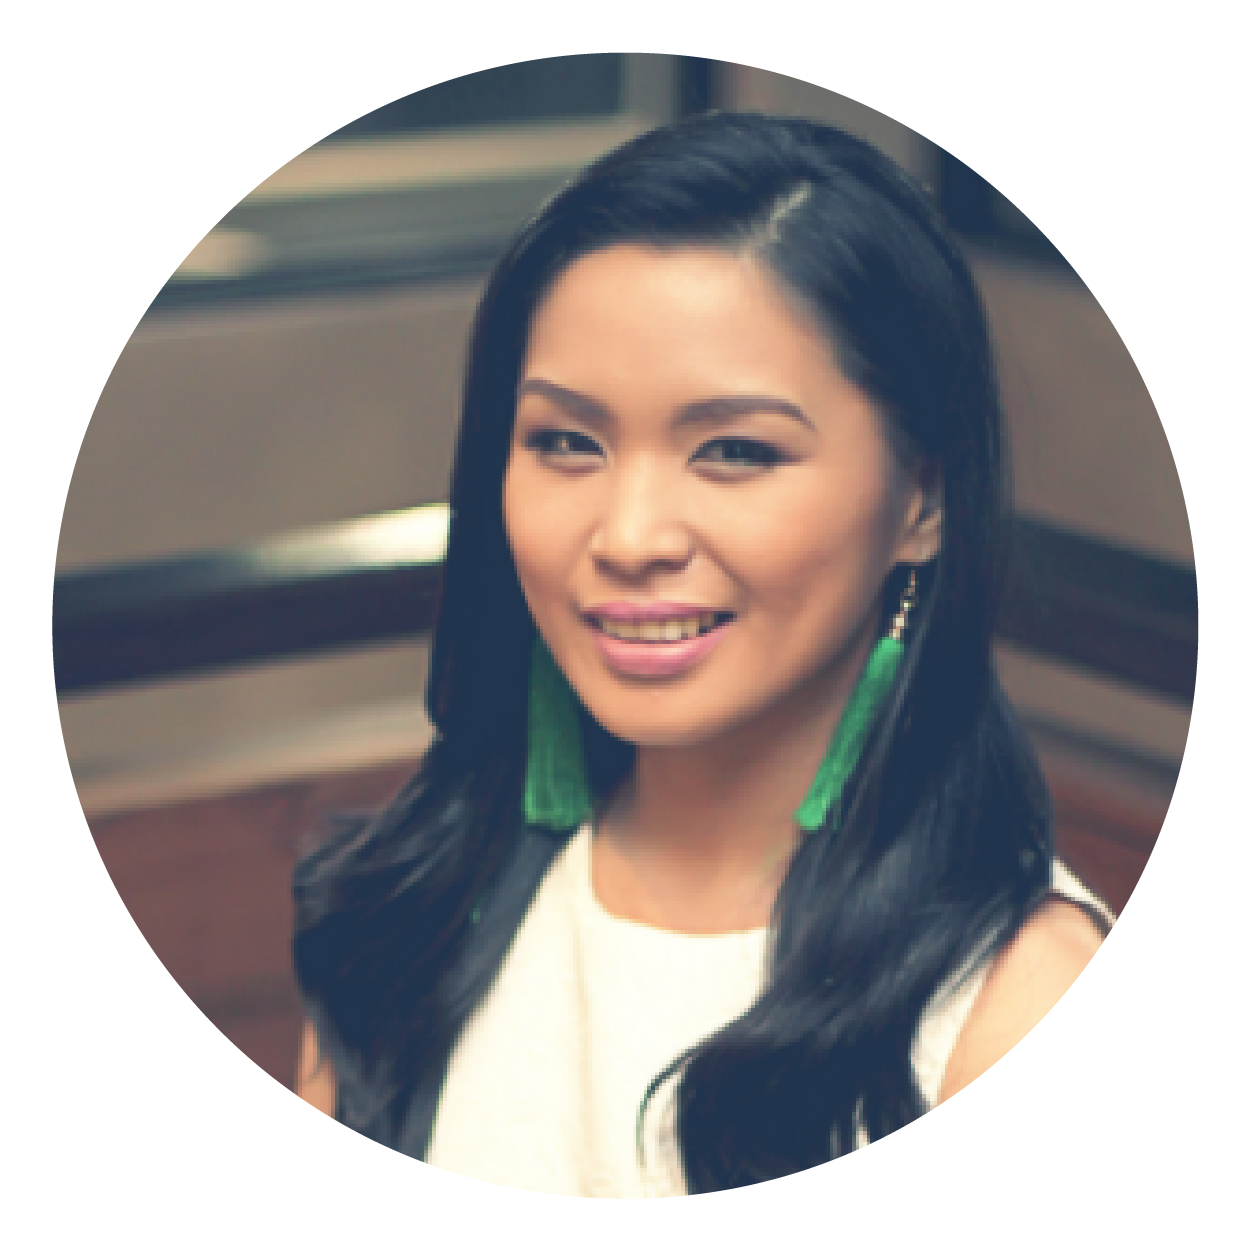 Mhyla Mae Uy - Social Media Strategist